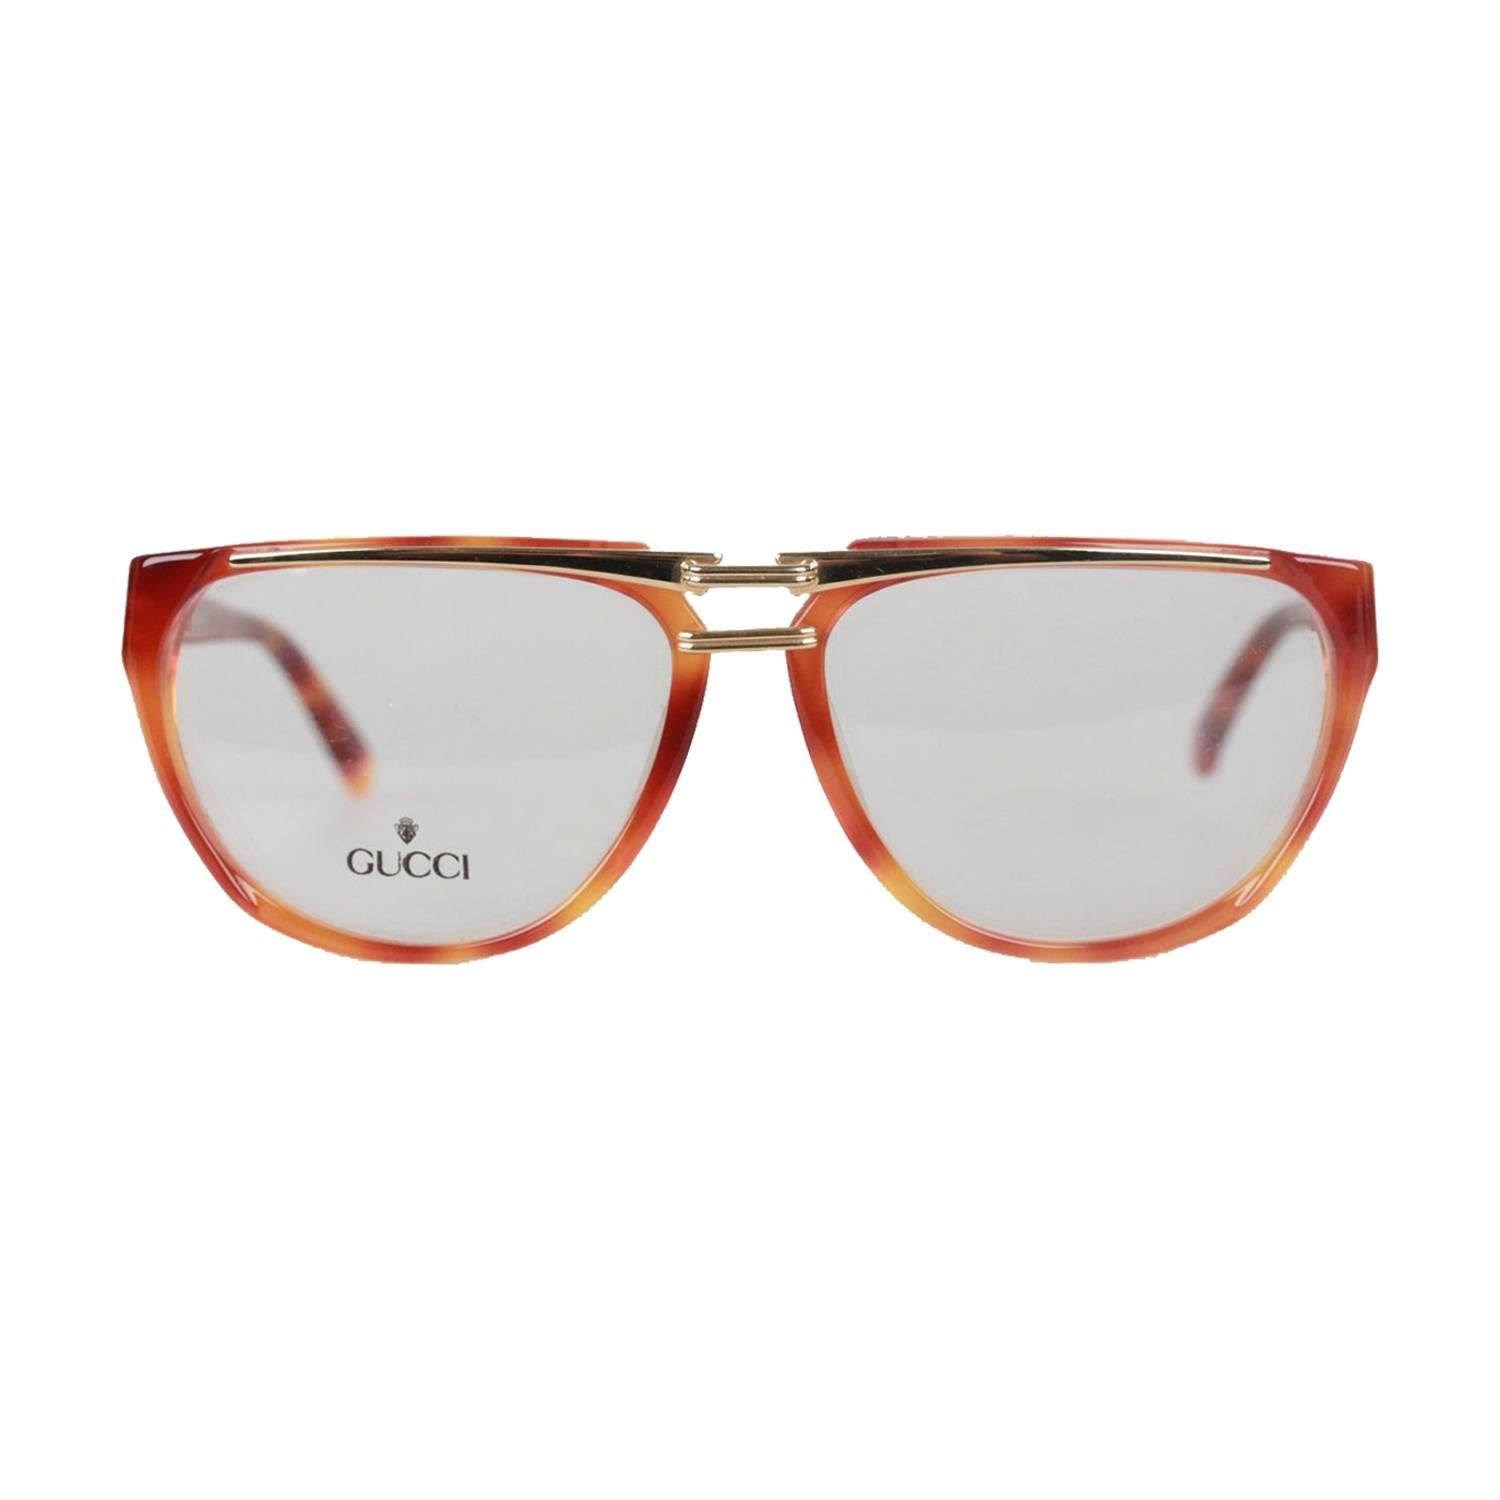 e554ab214d9dc Vintage Gucci Sunglasses - 36 For Sale at 1stdibs